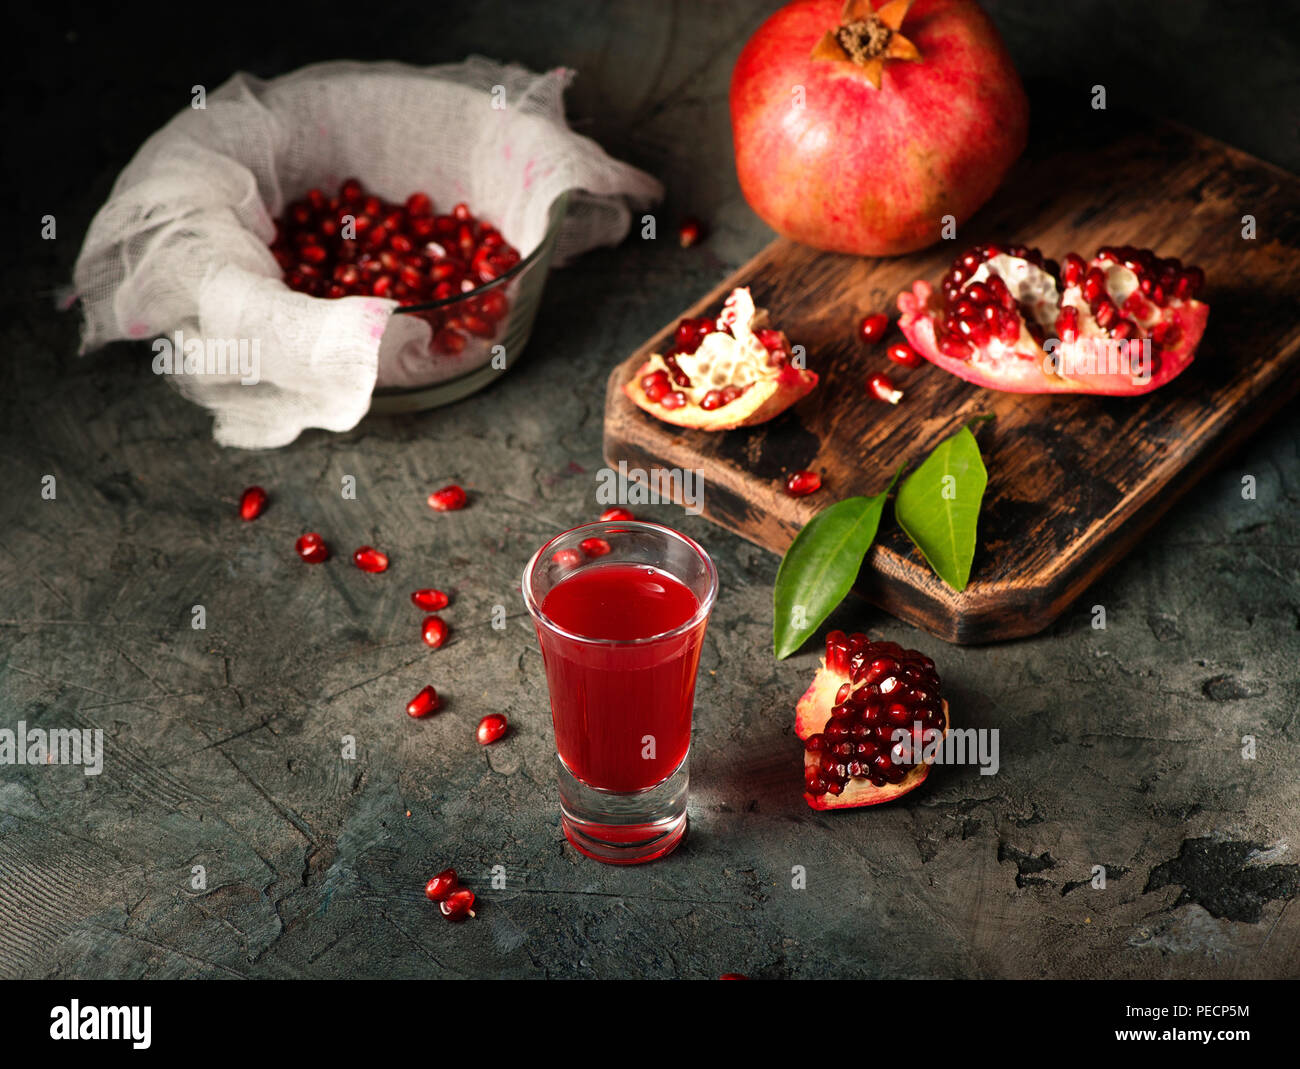 Glass of pomegranate juice. fruits with grains and leaves on the table. Make . Dark moody. - Stock Image